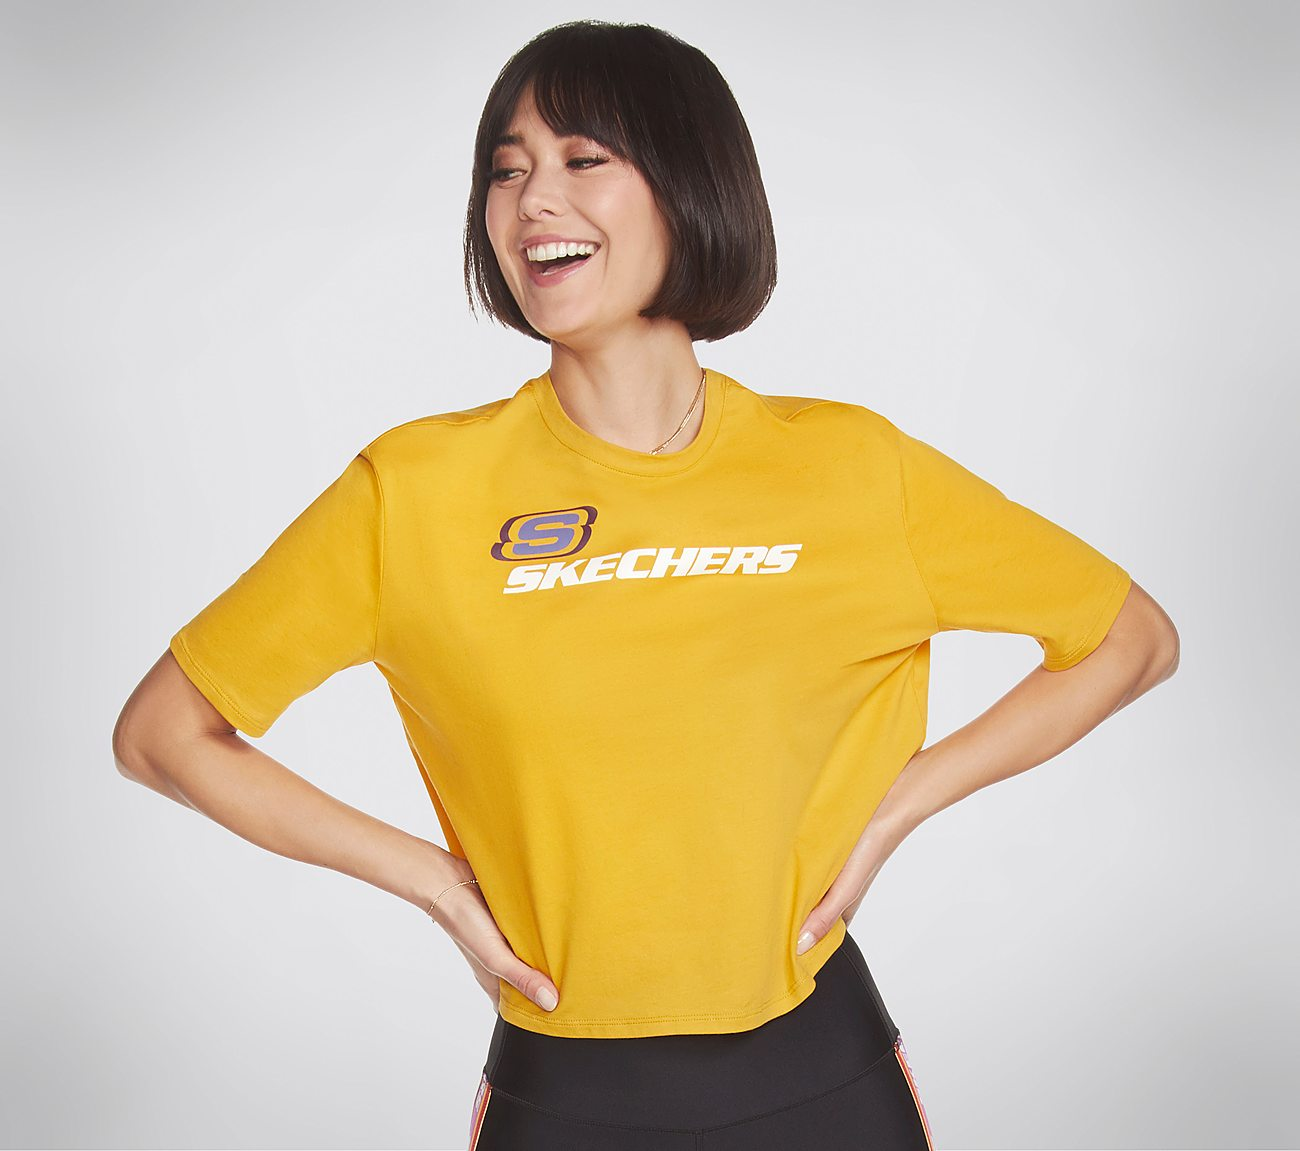 Skechers Apparel OG Cropped Tee Shirt